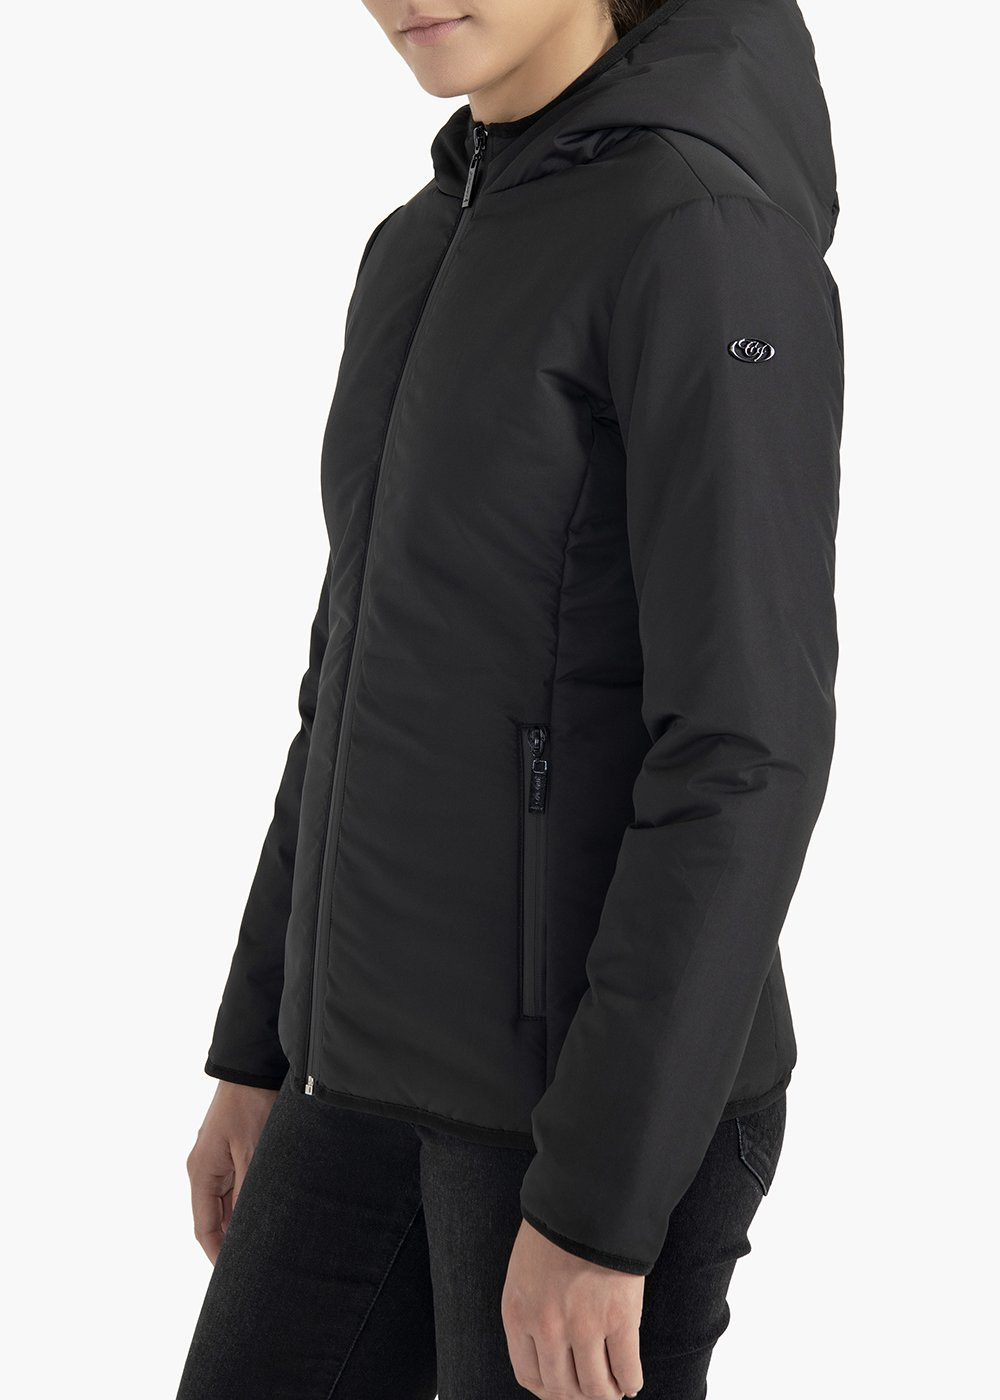 Greg hooded fabric jacket - Black - Woman